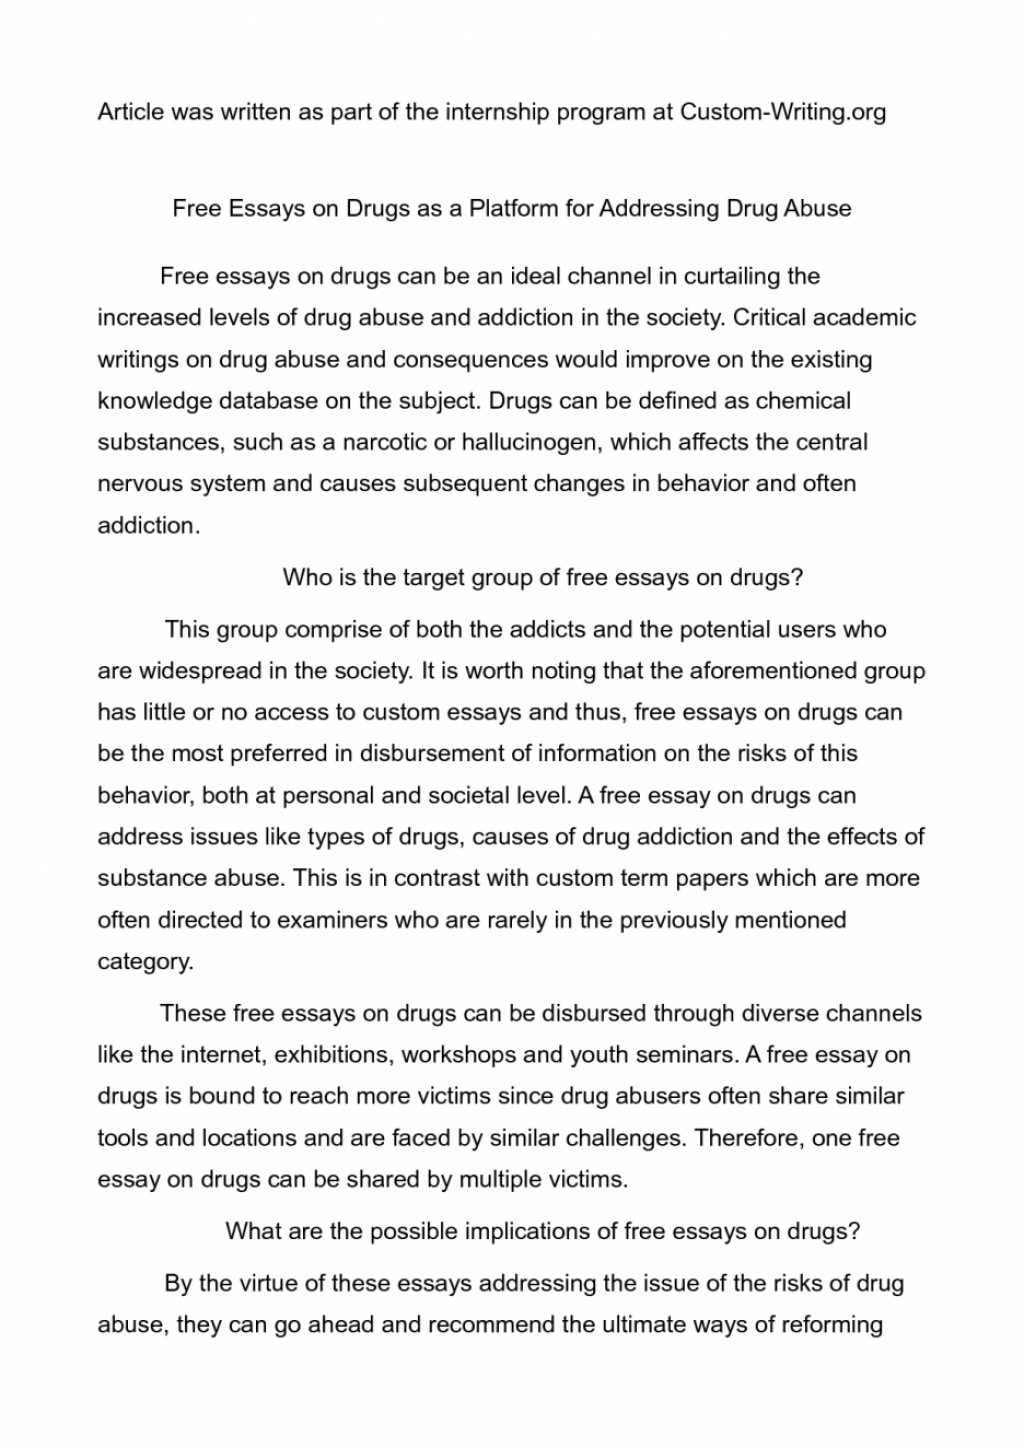 026 Drug Essays Essay About Drugs Anti Day Legalization Of Against To Campaign 936x1324 Stirring Short Tagalog Persuasive Illegal Argumentative Addiction Large